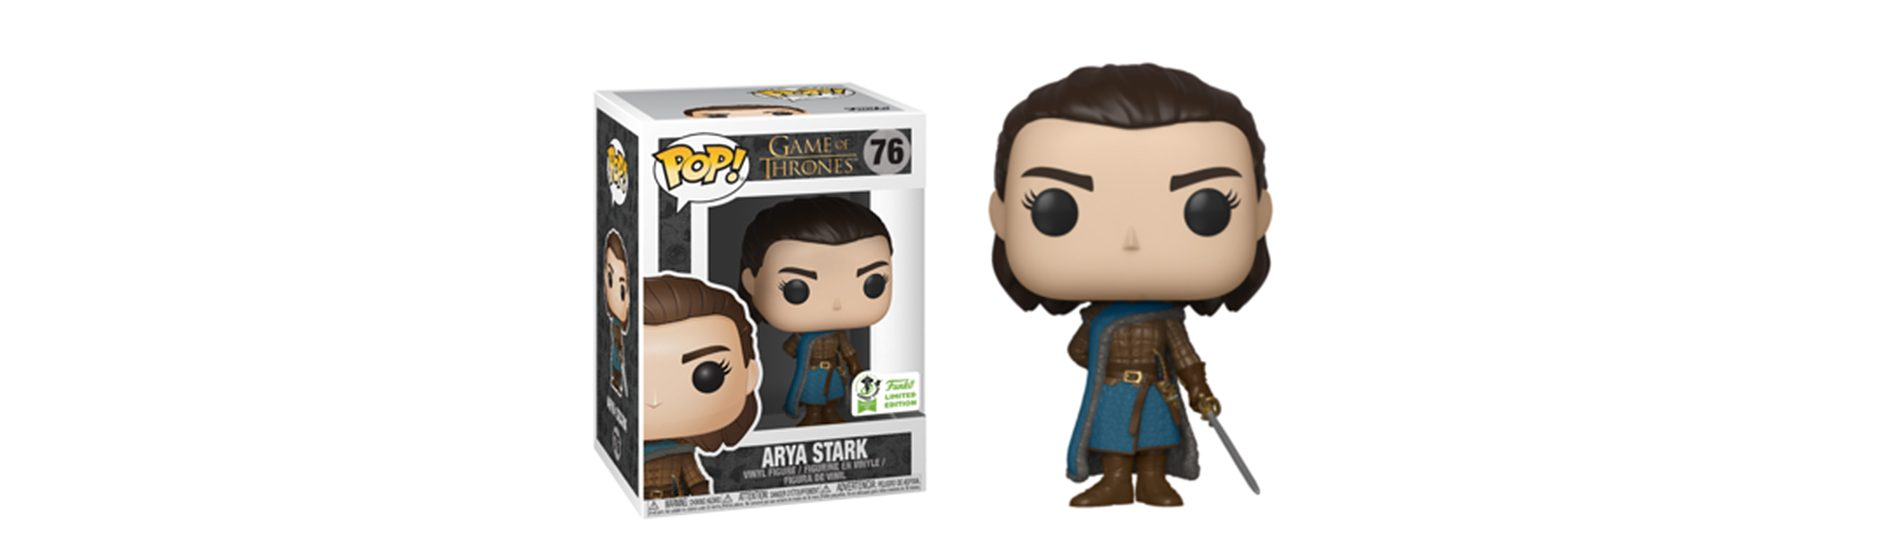 Funko Game of Thrones Arya Stark ECCC